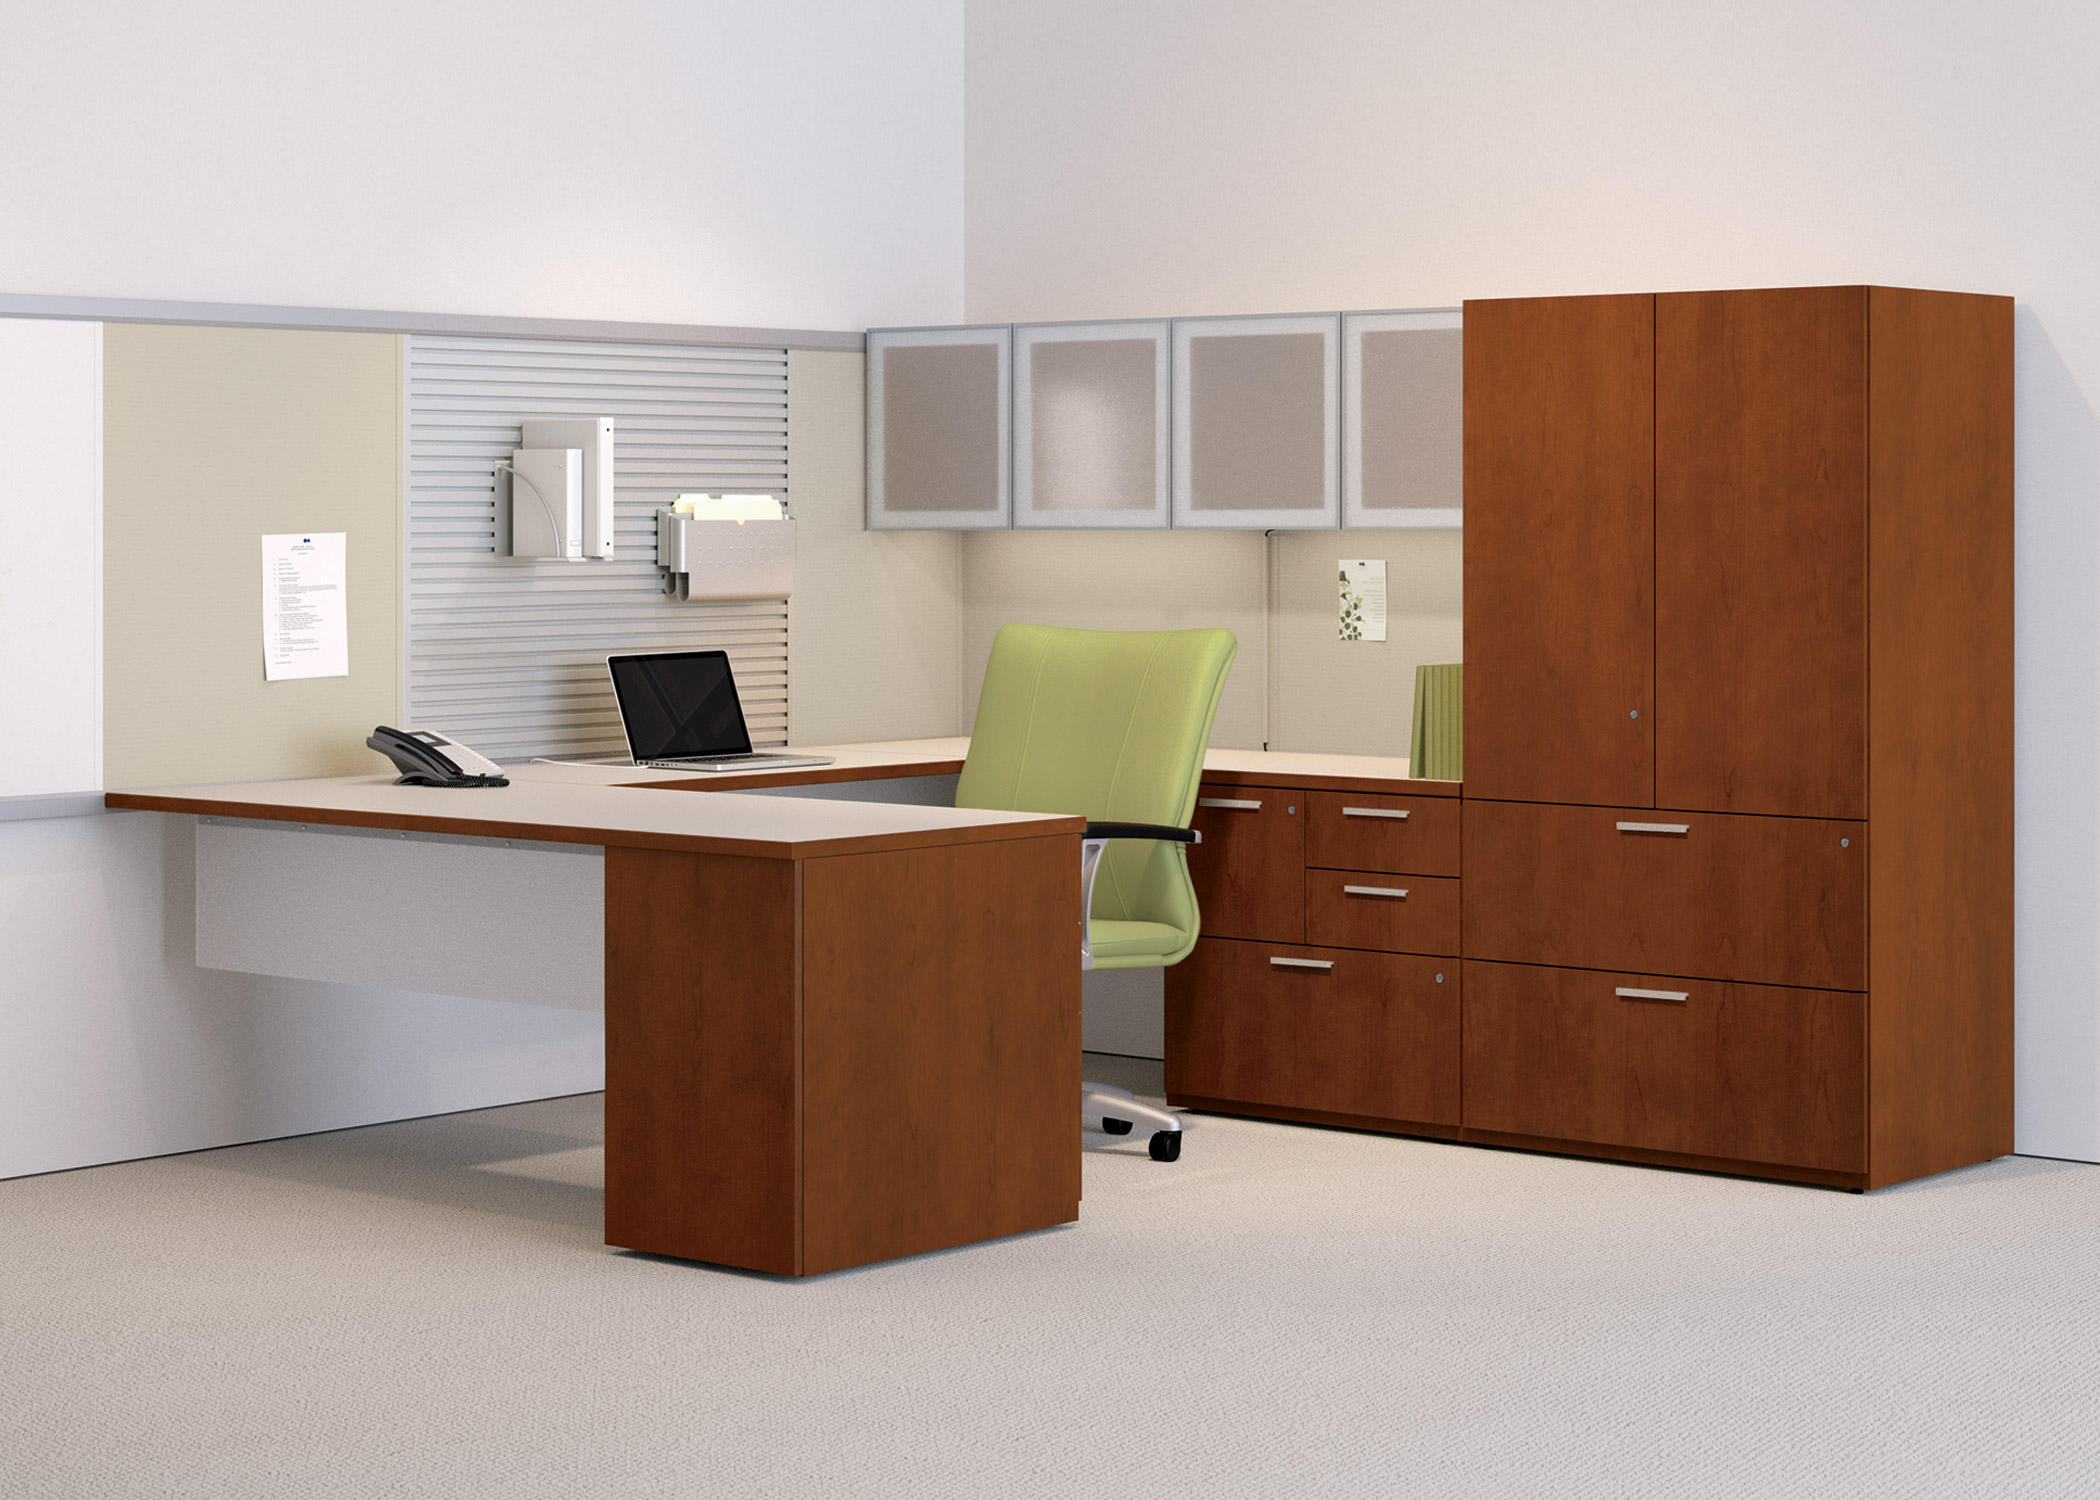 WAVEWORKS DESK - Individual Desks From National Office Furniture